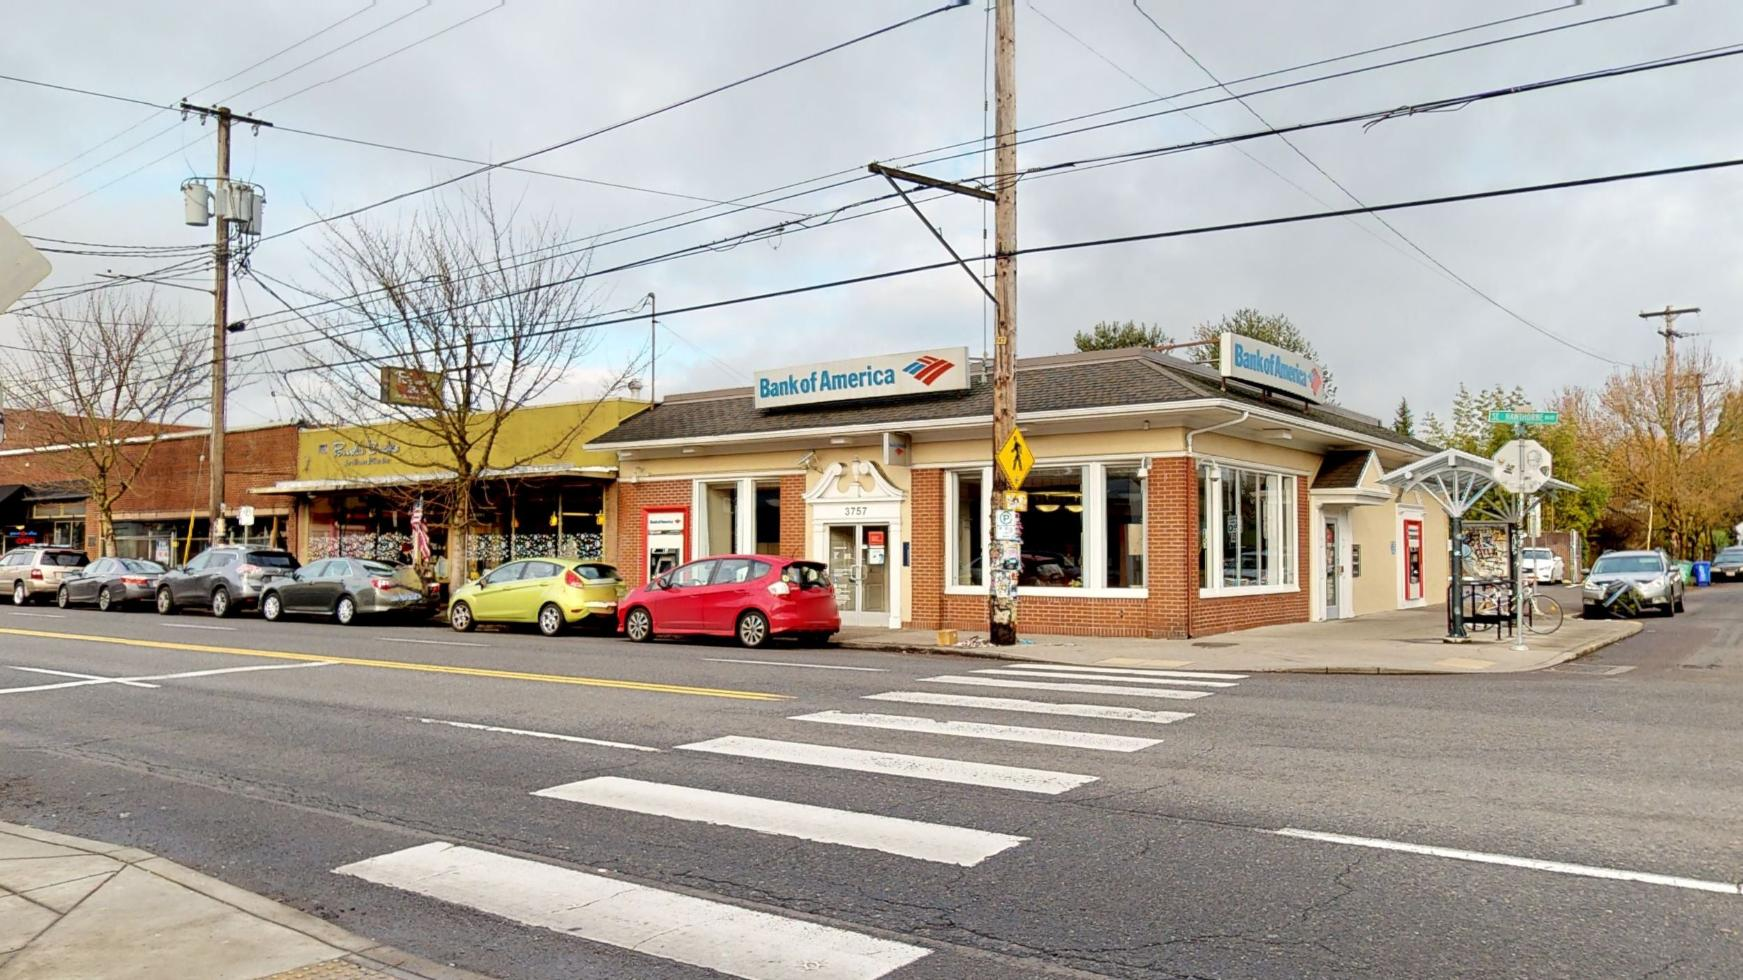 Bank of America financial center with walk-up ATM | 3757 SE Hawthorne Blvd, Portland, OR 97214